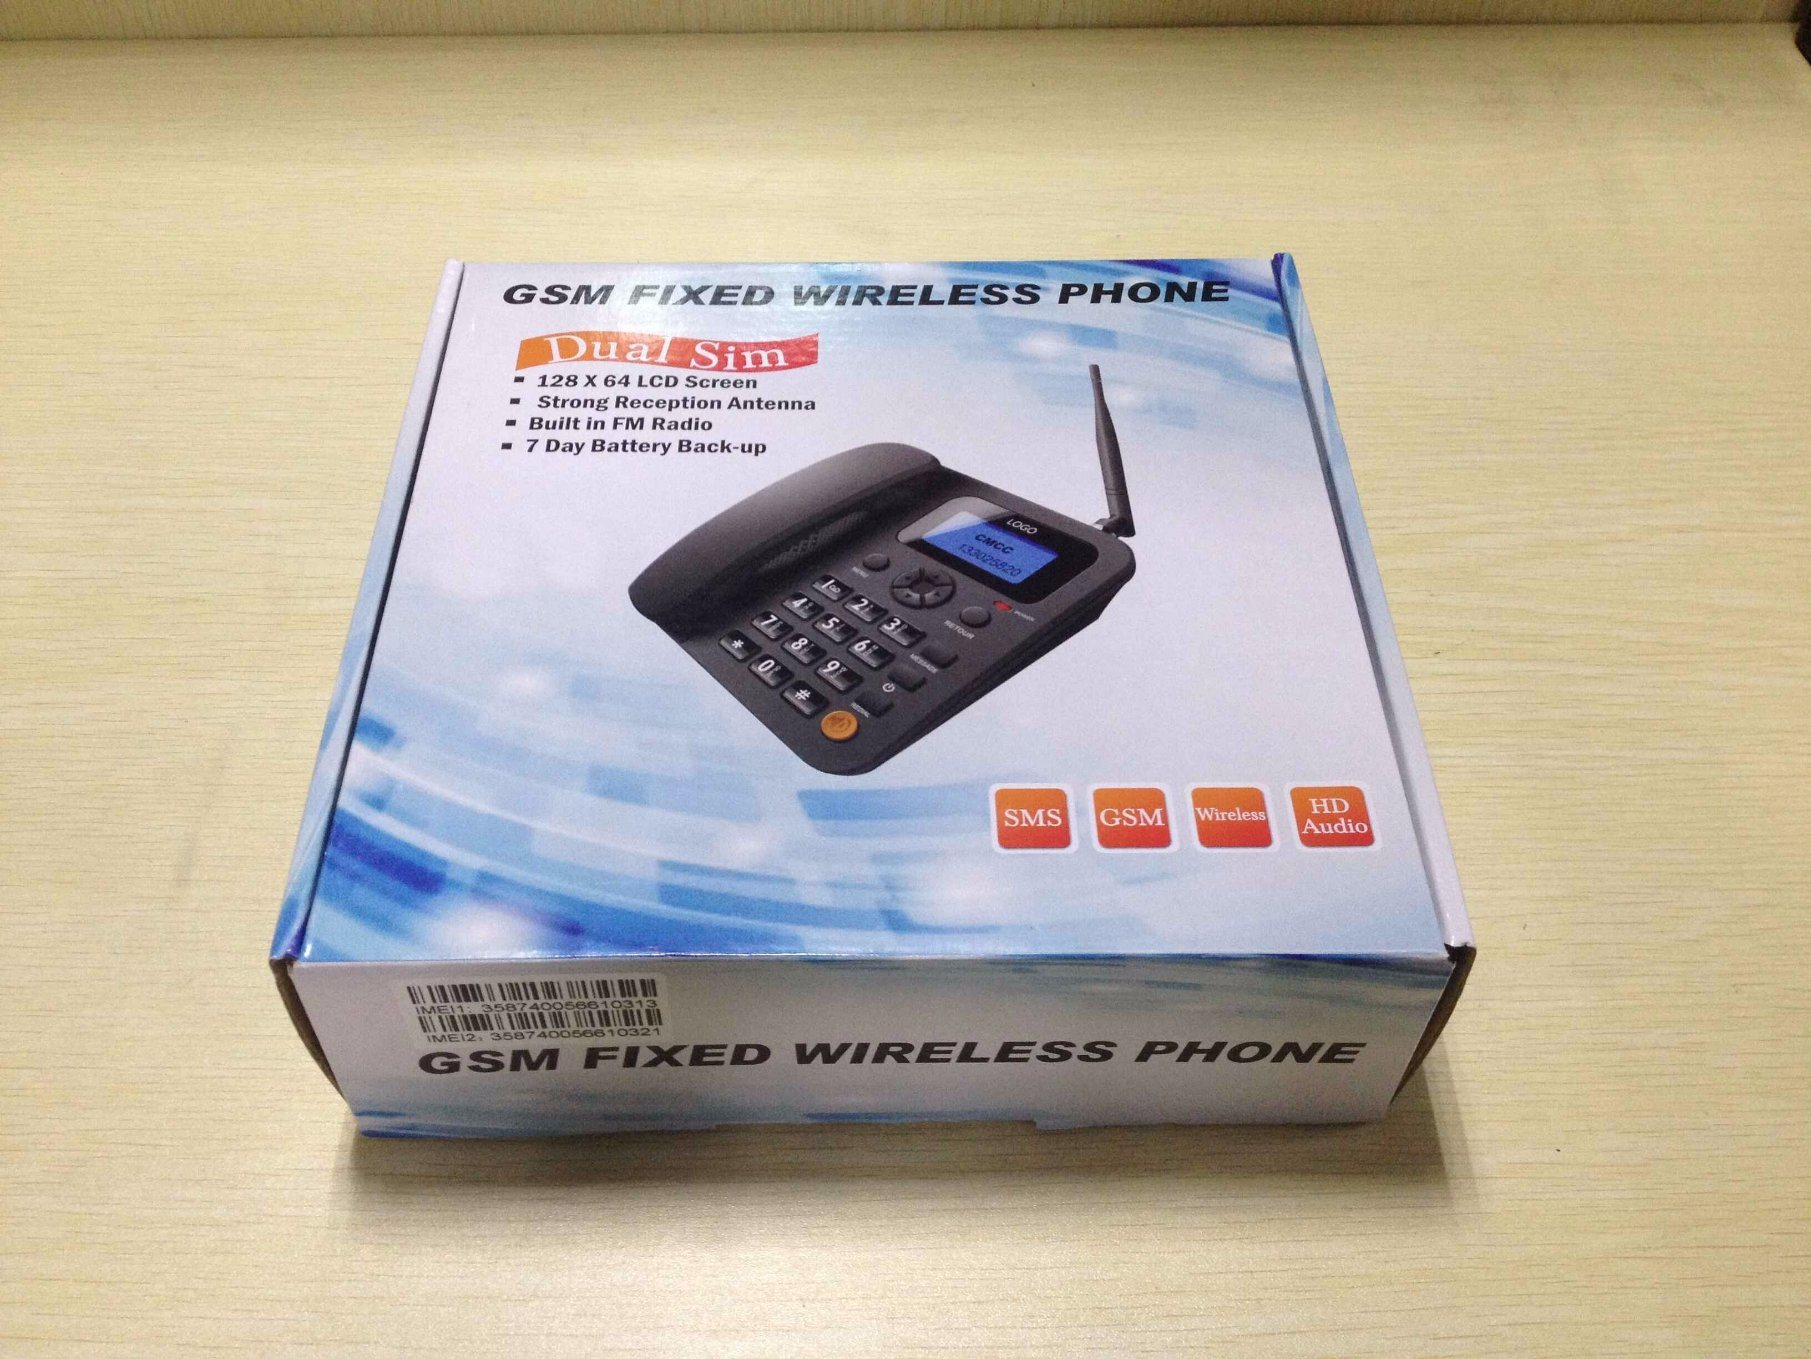 GSM Fixed Wireless Telephone with 2 SIM Card Slot